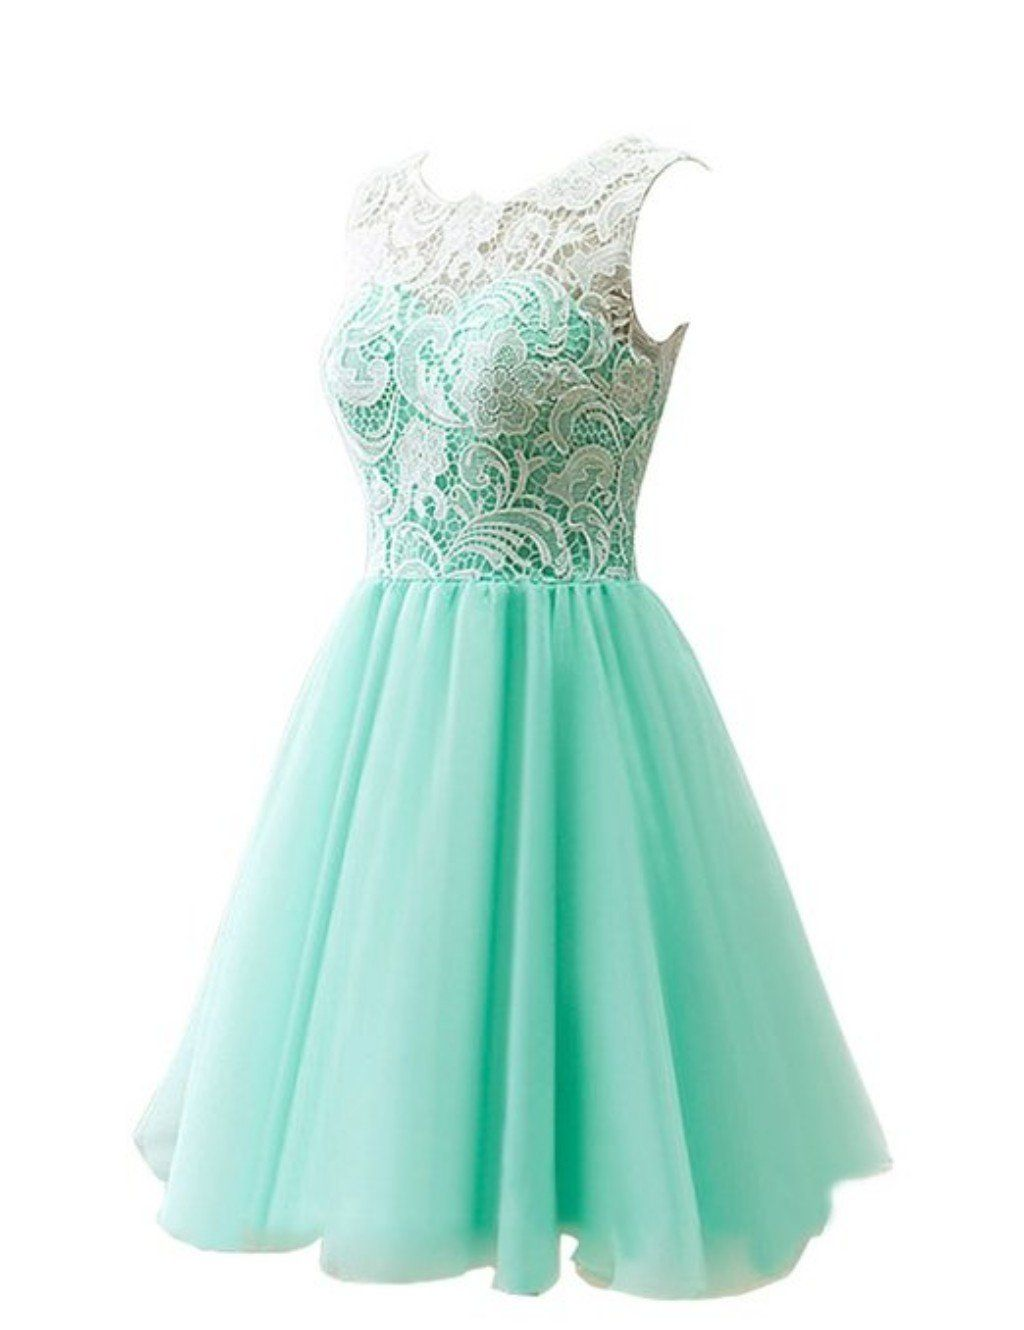 Ccbubble lace th grade prom dresses oneckline short homecoming